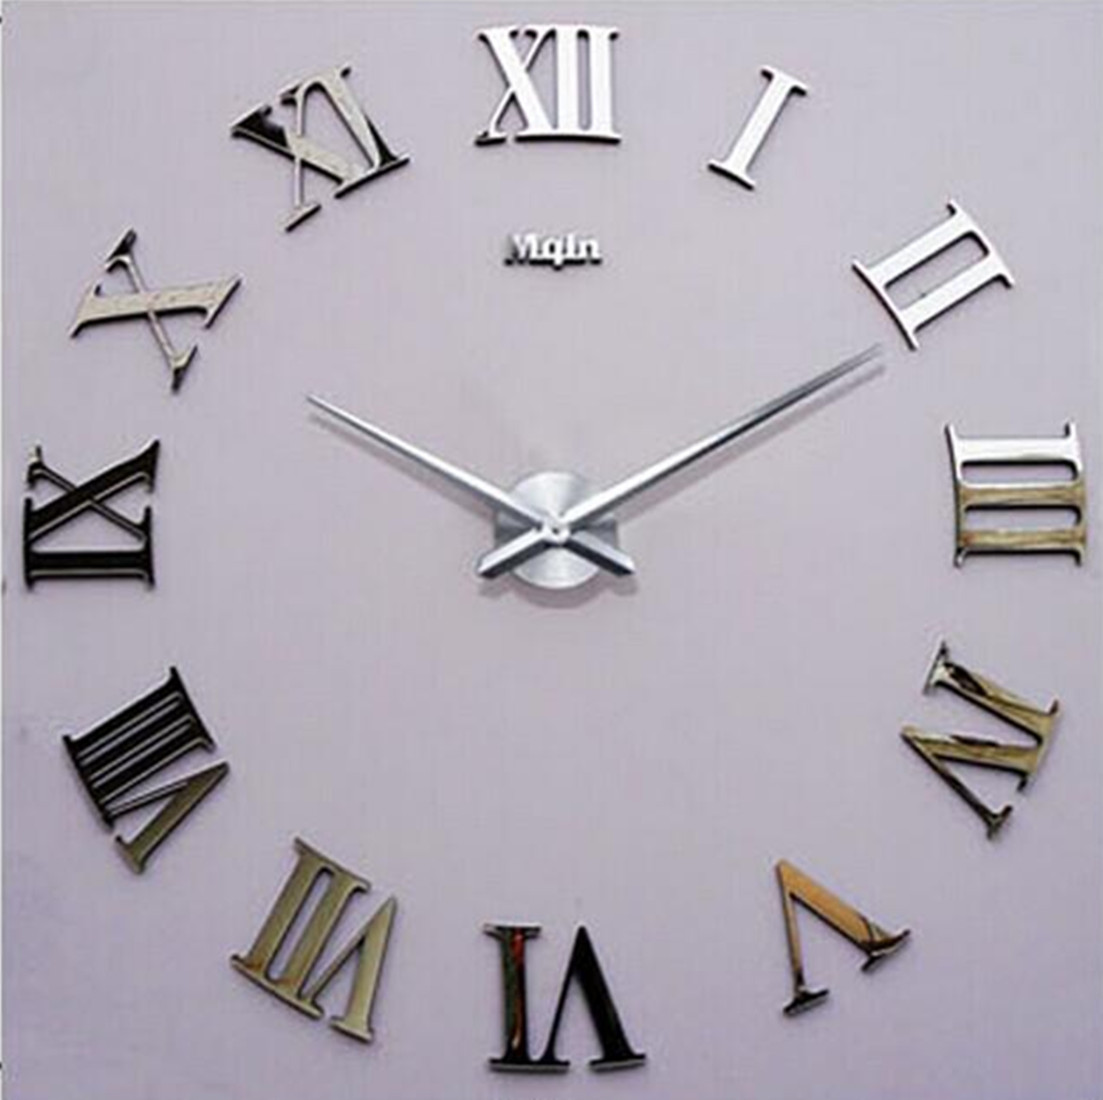 new diy 3d wall clock roman numerals large size mirrors surface luxury art clock ebay. Black Bedroom Furniture Sets. Home Design Ideas